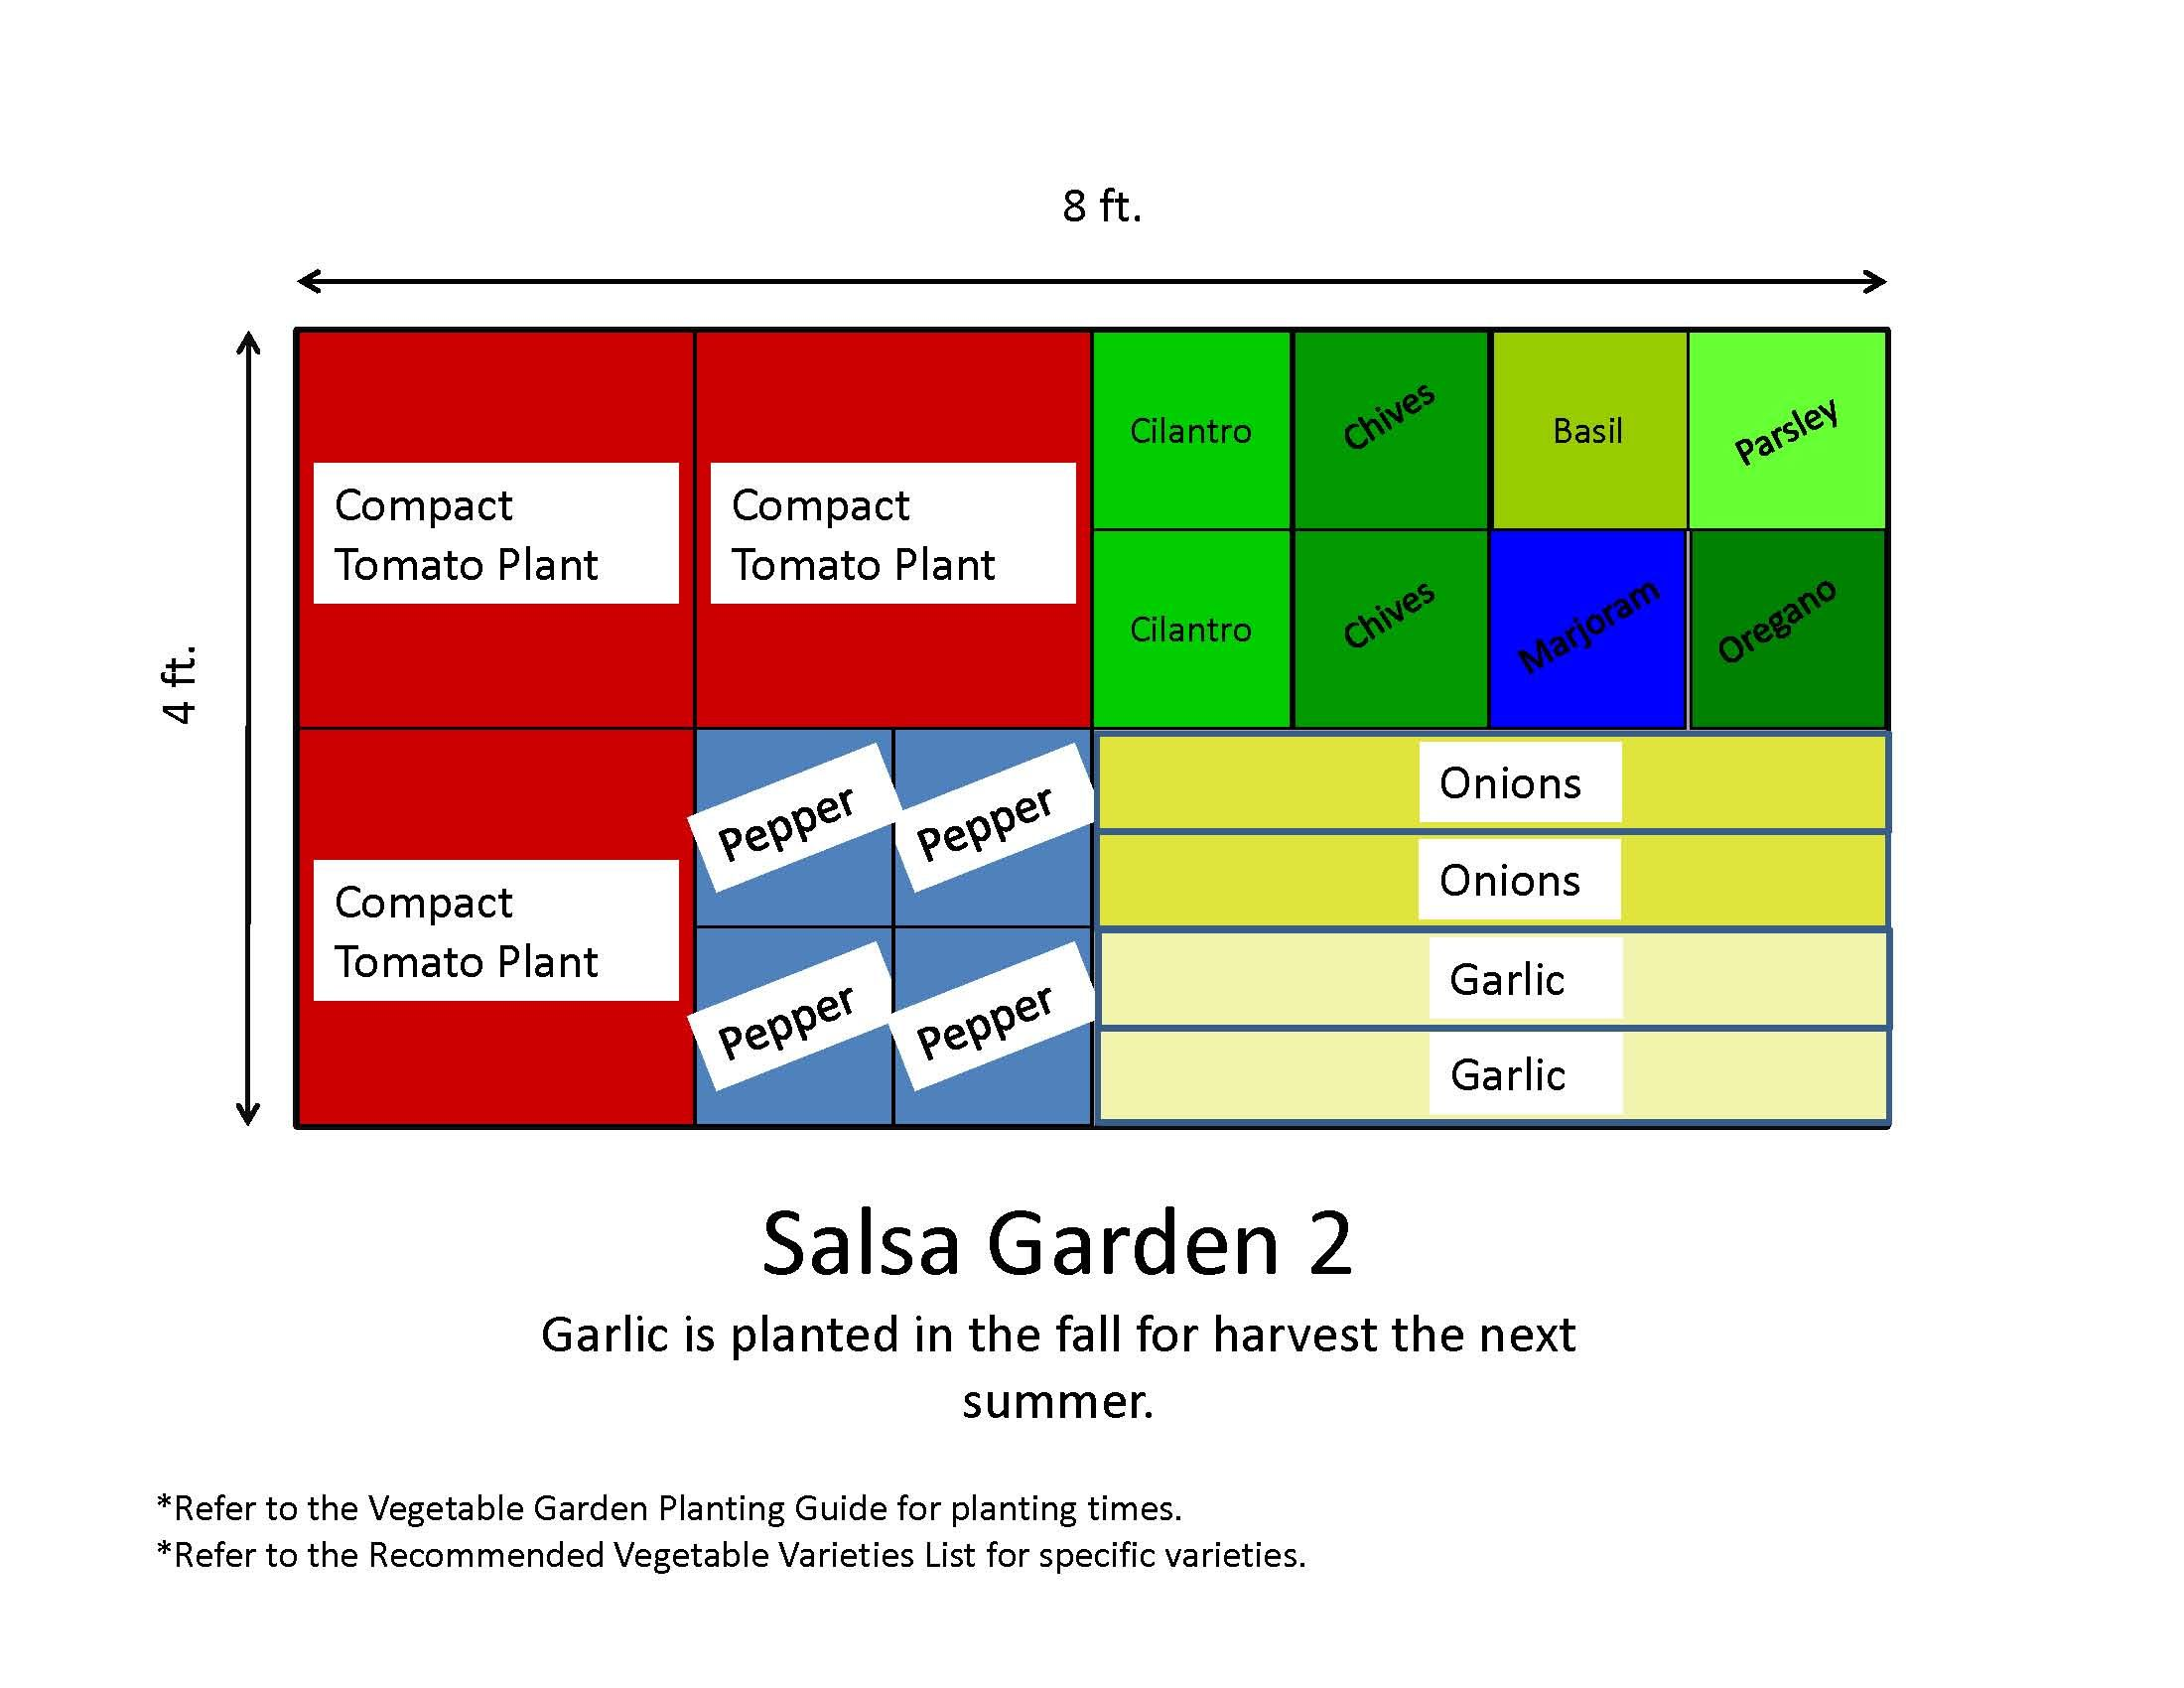 salsa garden plan other garden templates too good easy visuals - Garden Design Template